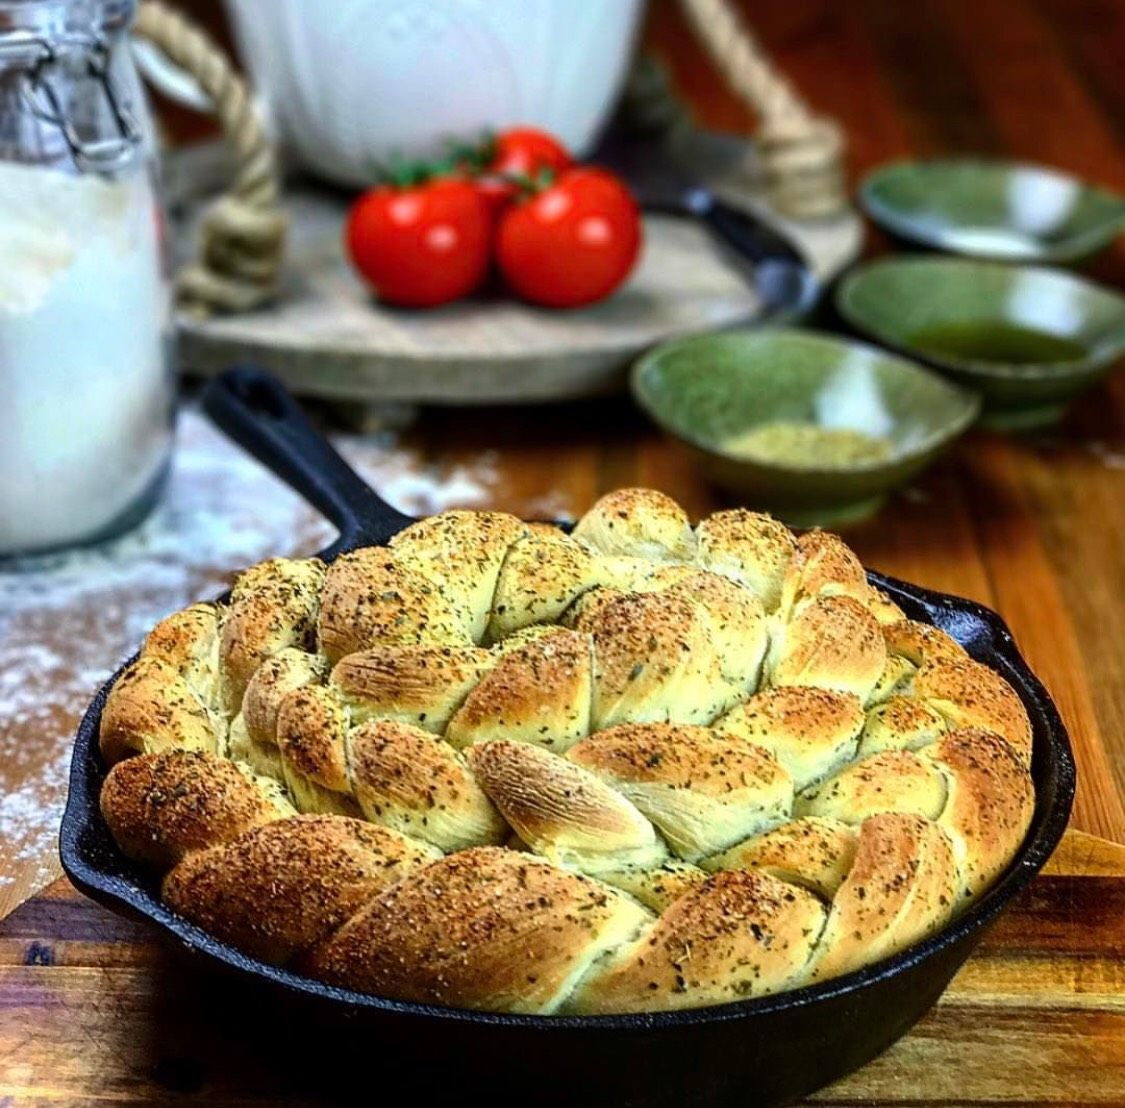 Garlic & herb tear and share bread is a beautiful food for sharing with those you love. A soft and doughy texture perfect for tearing to dip in sauces or oil and salt. #tearandsharebread